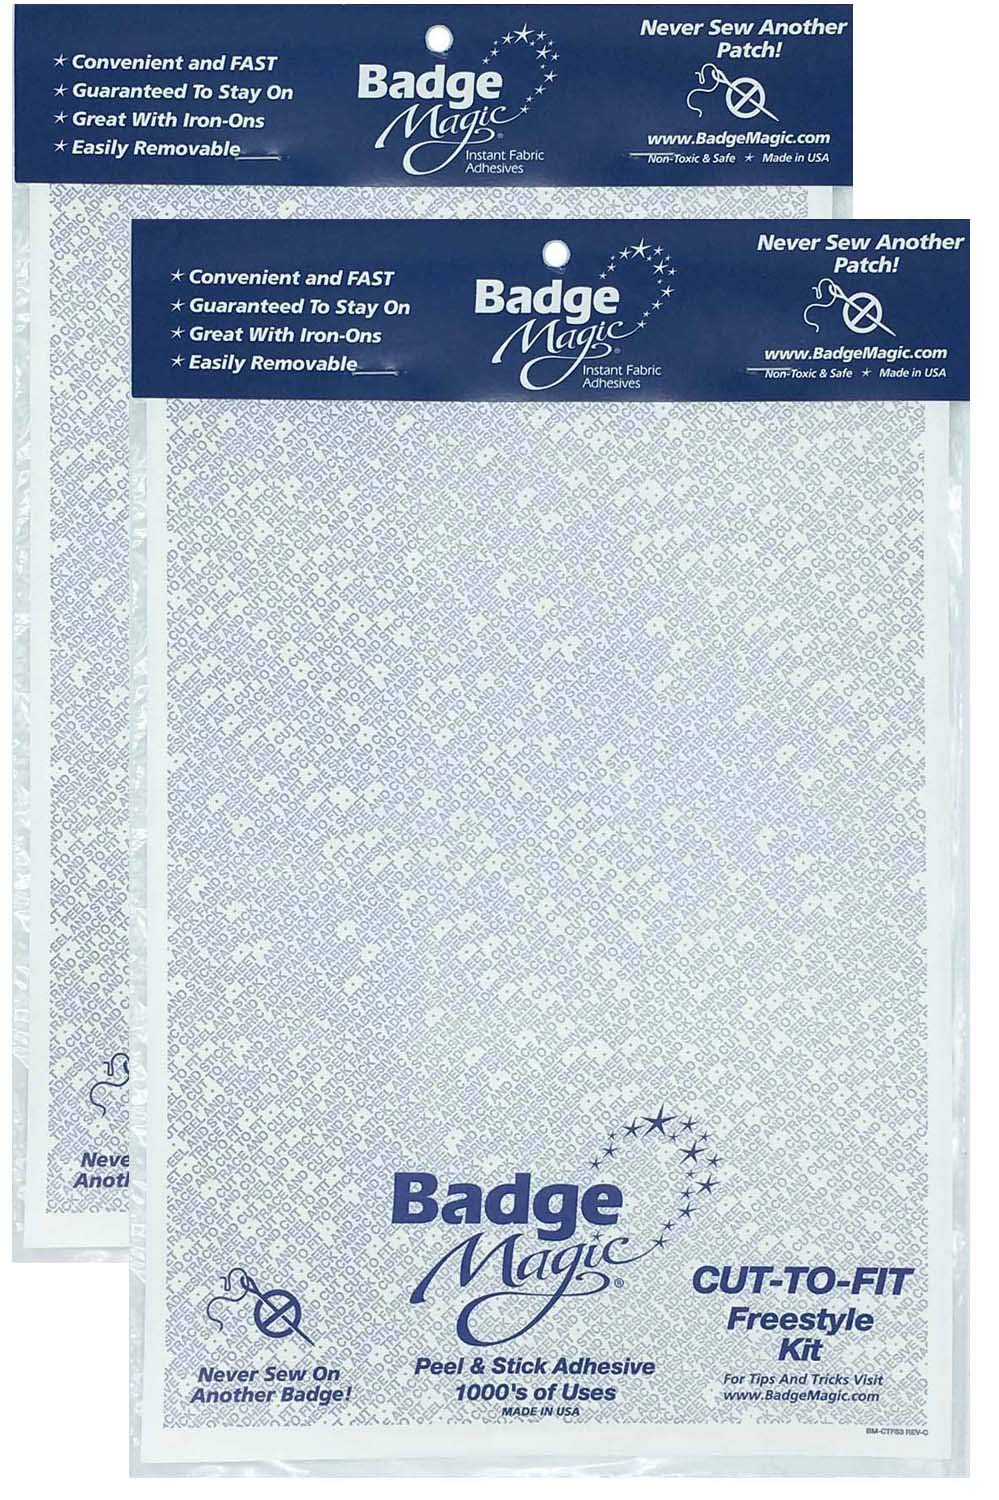 Badge Magic Cut to Fit Freestyle Patch Adhesive Kit (2-Pack) by Badge Magic